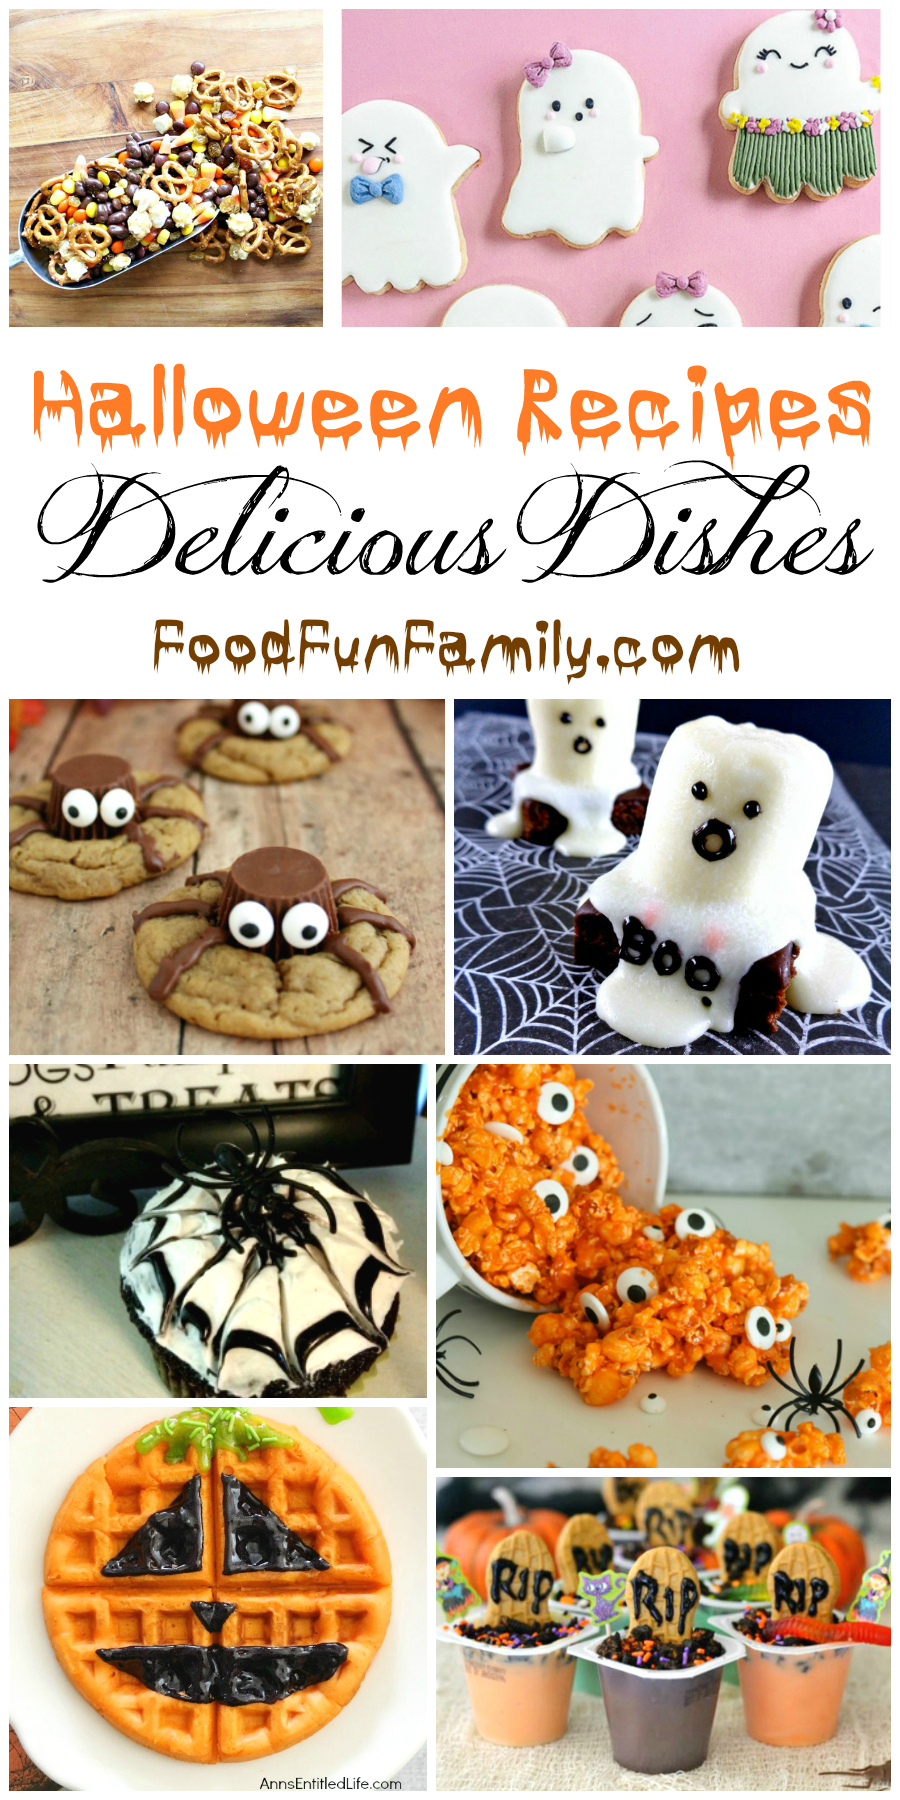 Halloween Recipes that will thrill the entire family! A Delicious Dishes Recipe Party